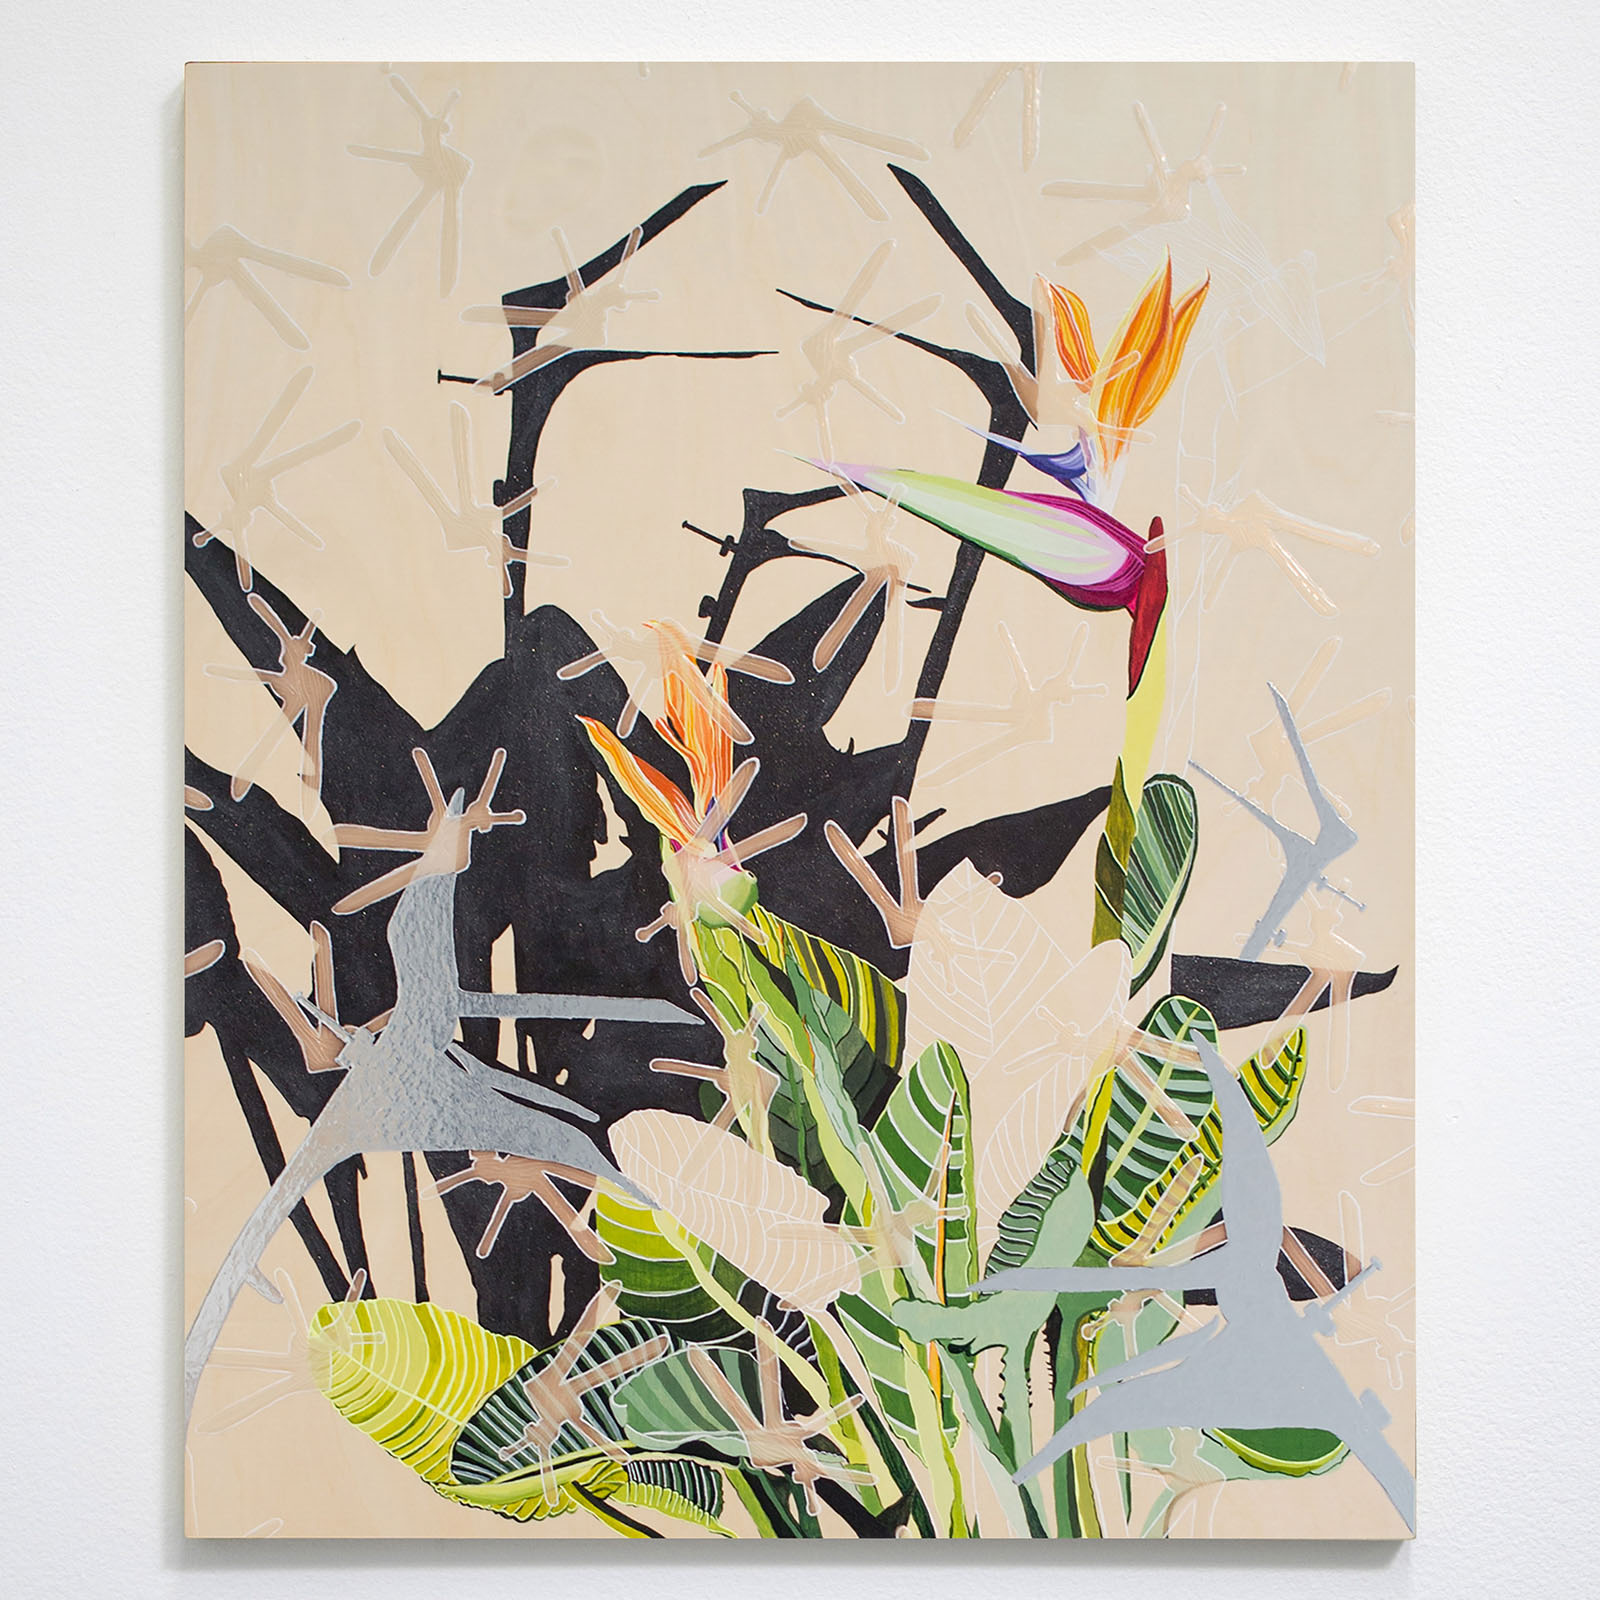 Tanya Thoma  Specula for the Birds to Look at,  Wood Panel, acrylic paint, ink, various acrylic mediums, 2018